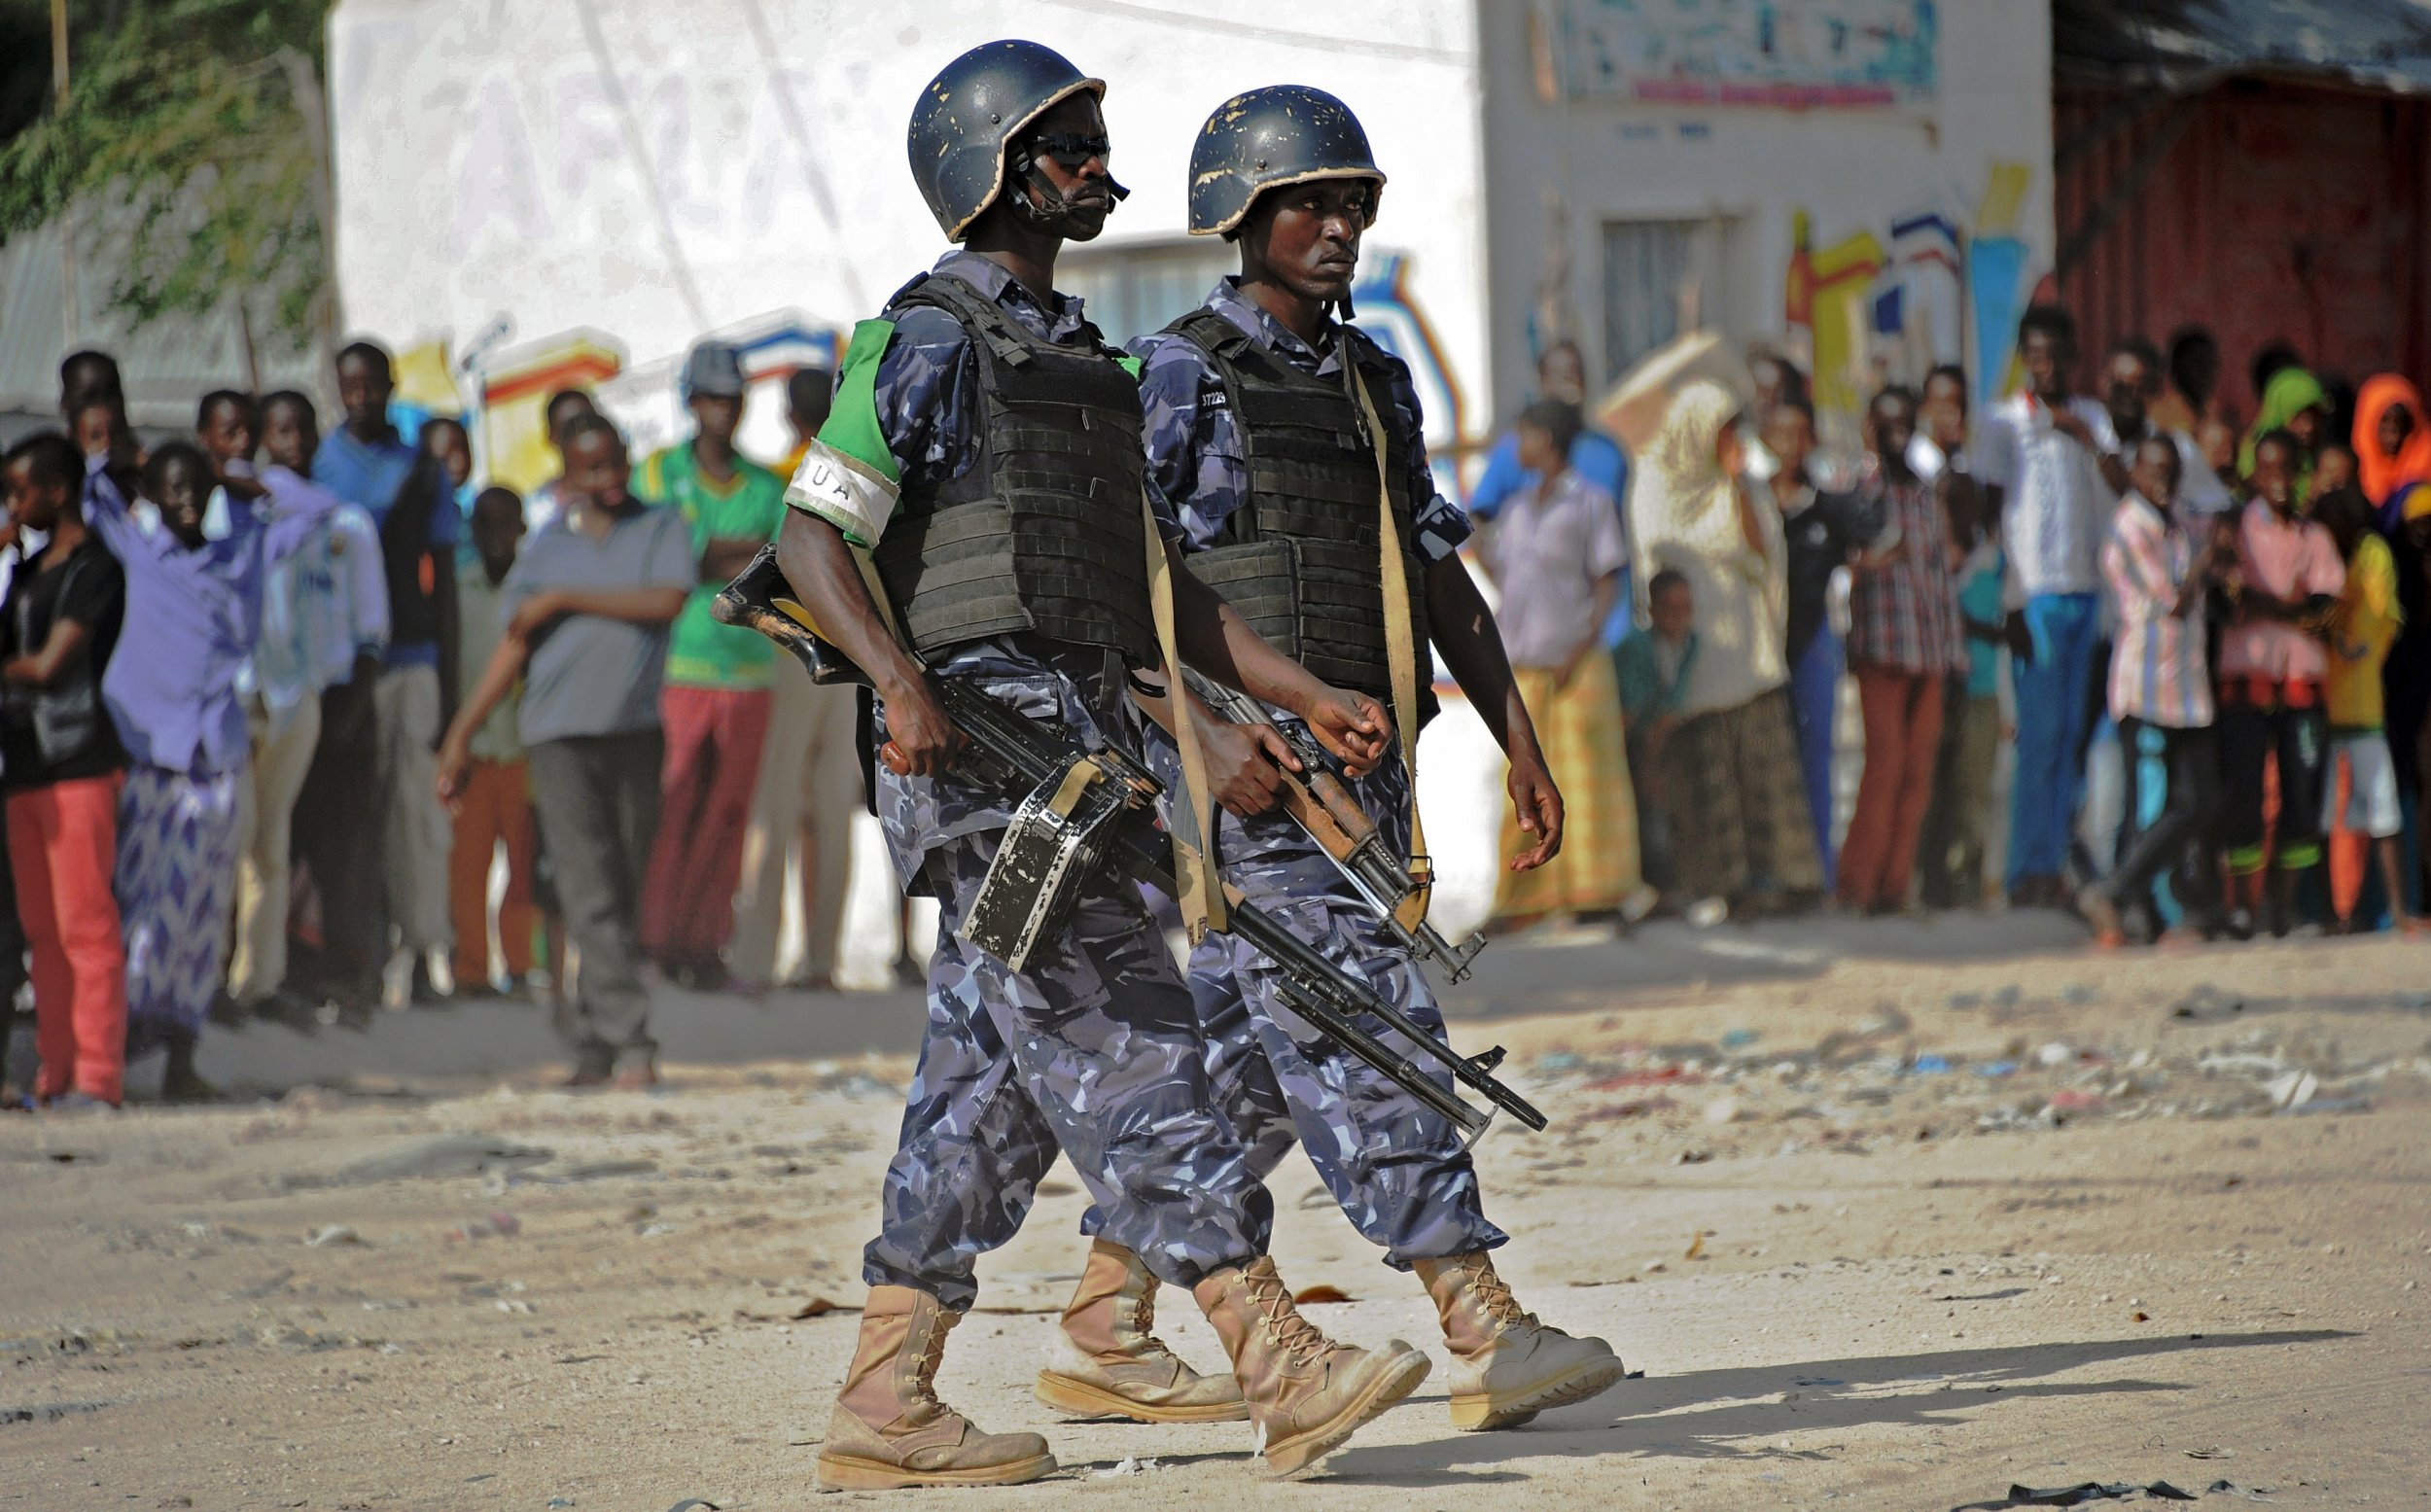 Al-Shabab Plots Attacks Disguised in African Union Uniforms: Official